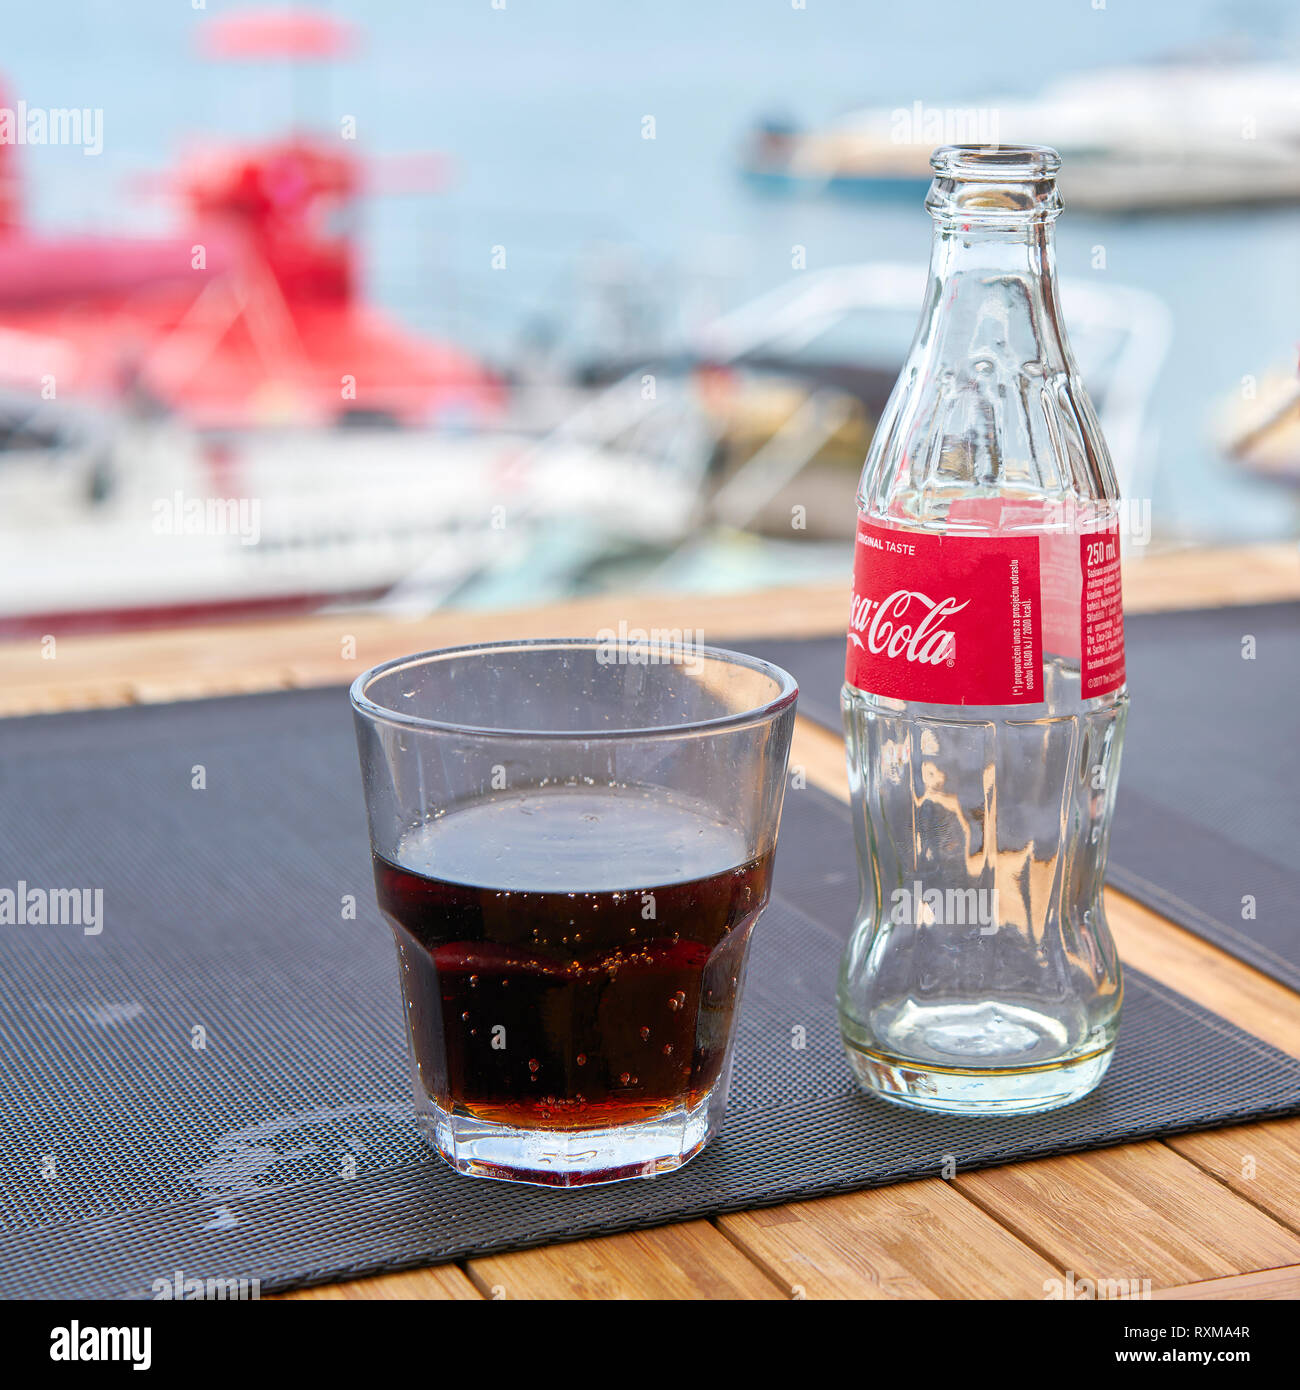 Coca-Cola bottle on a table in the restaurant - Stock Image